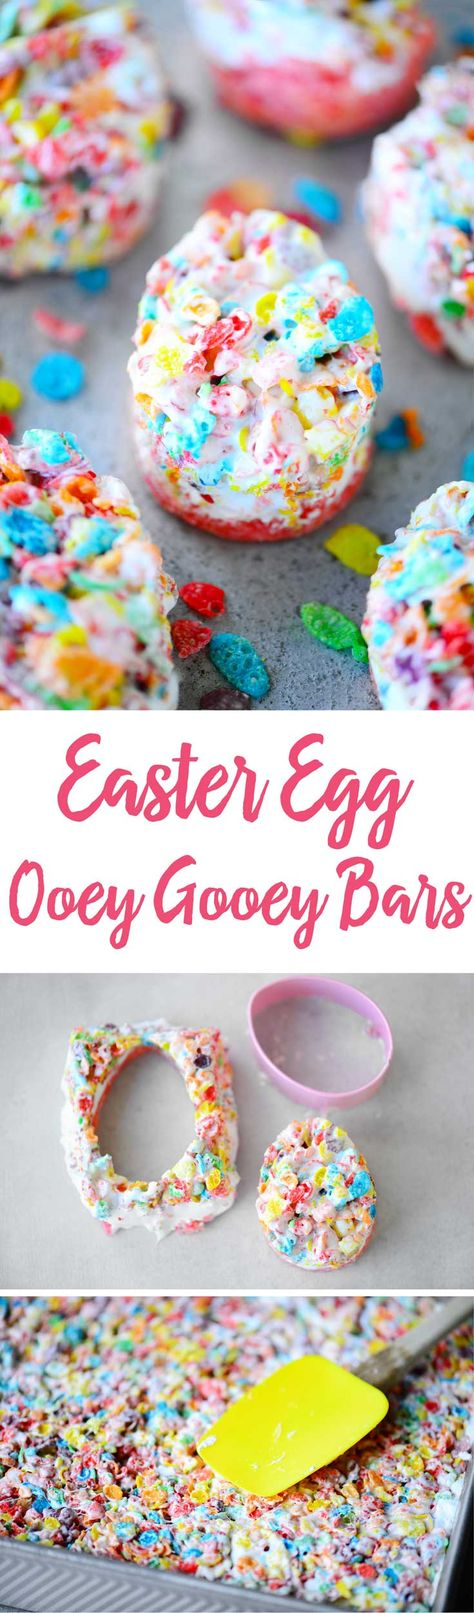 Strawberry Ooey Gooey Bars have a strawberry cake mix crust with marshmallow cream and fruity pebbles treats on top. They are irresistible to kids of all ages! Cut them into Easter egg shapes for a fun Easter dessert.